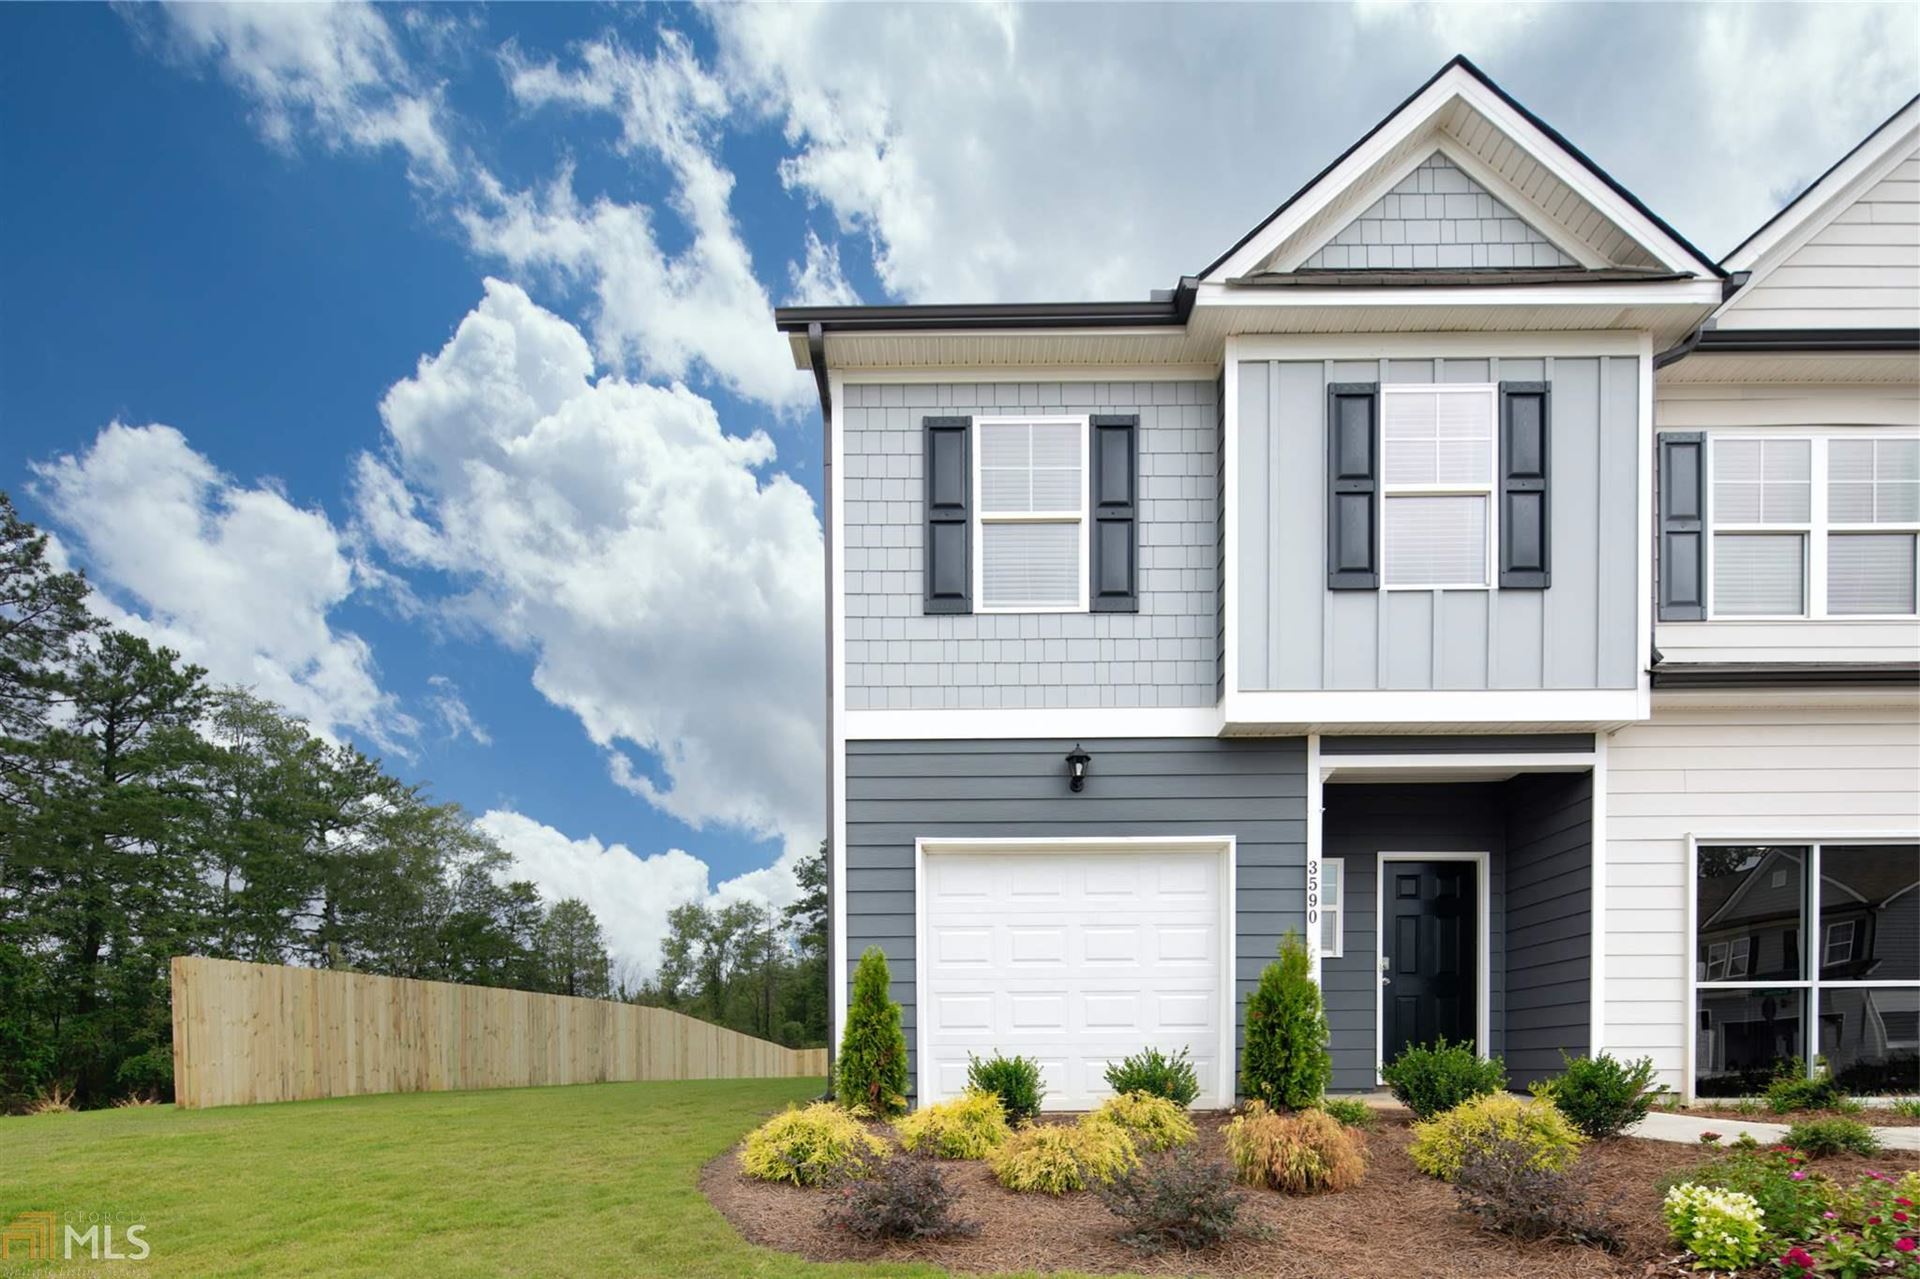 7126 Gladstone Cir, Lithonia, GA 30038 - MLS#: 8867491